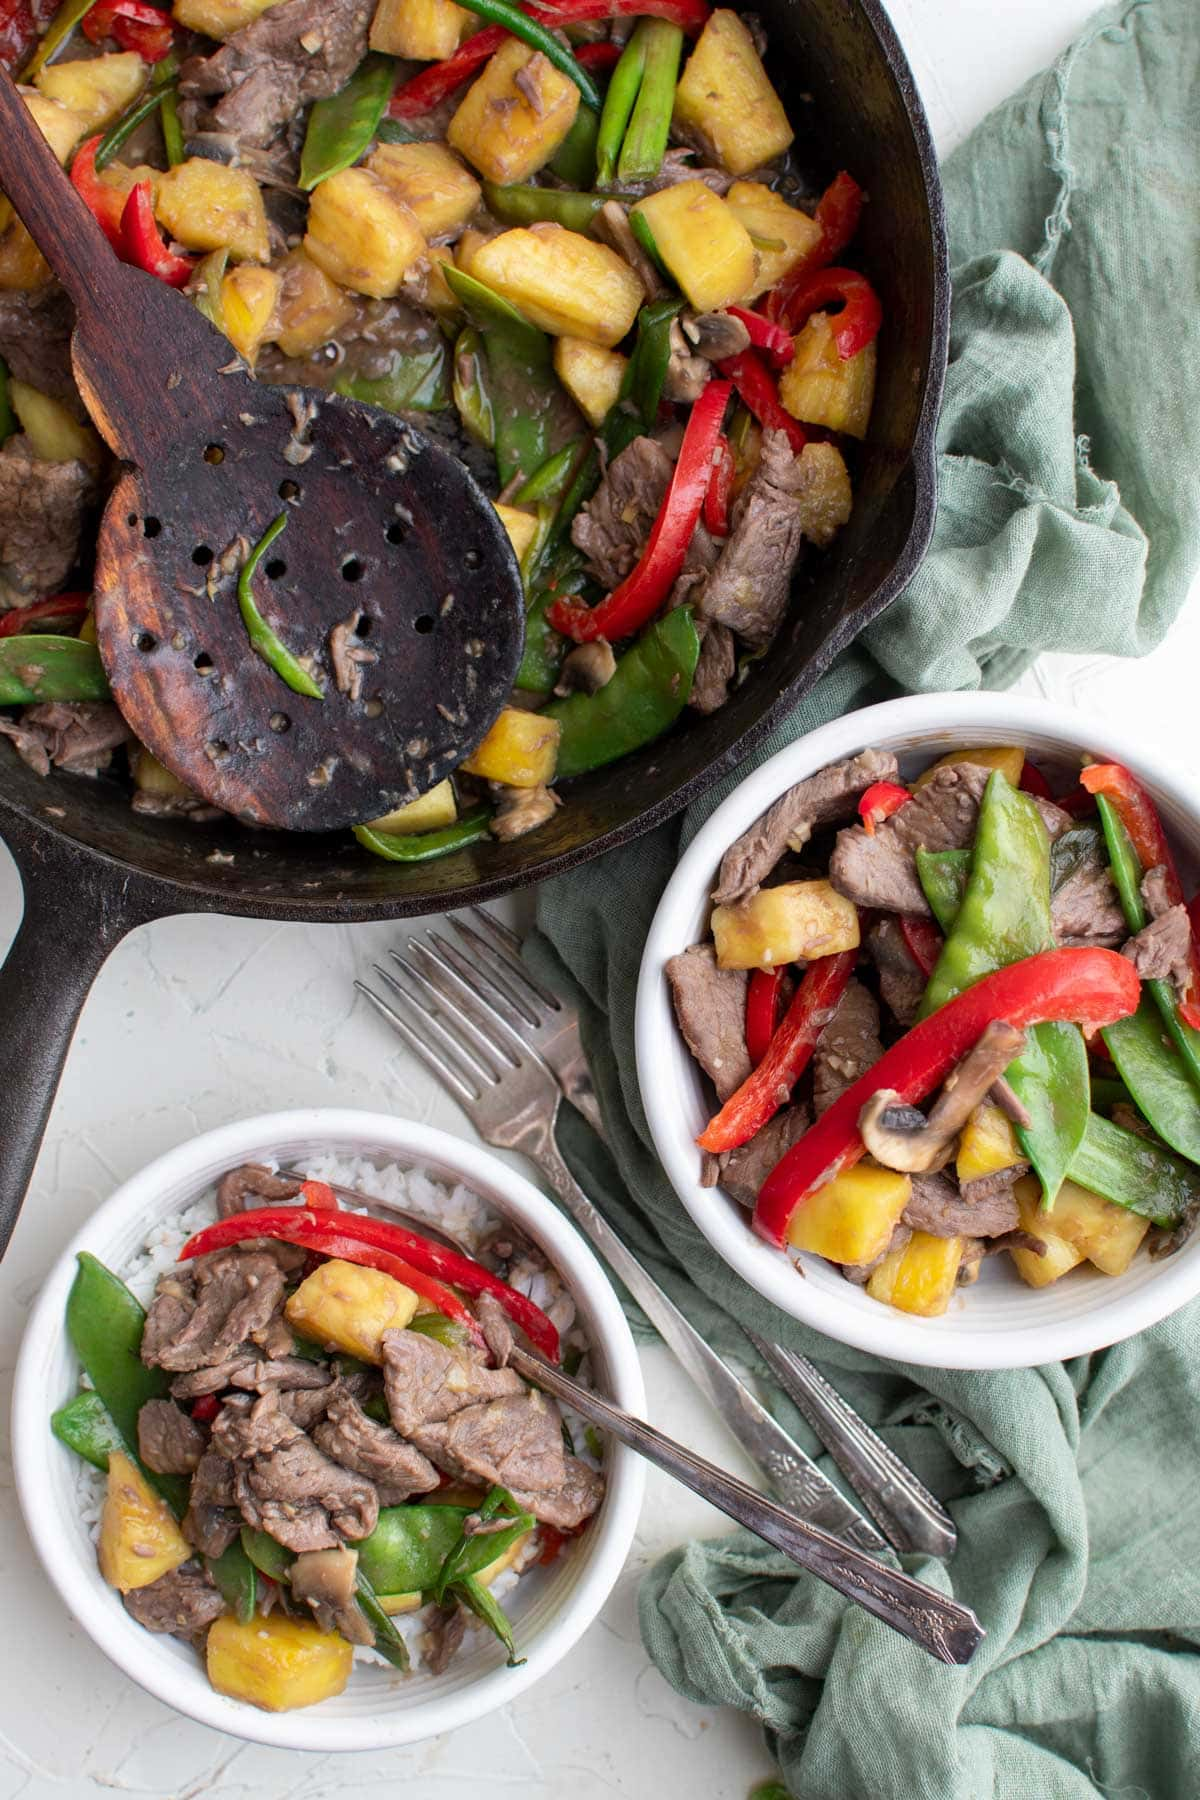 white bowls with beef, stir fry vegetables, green napkin, black skillet, wood spoon